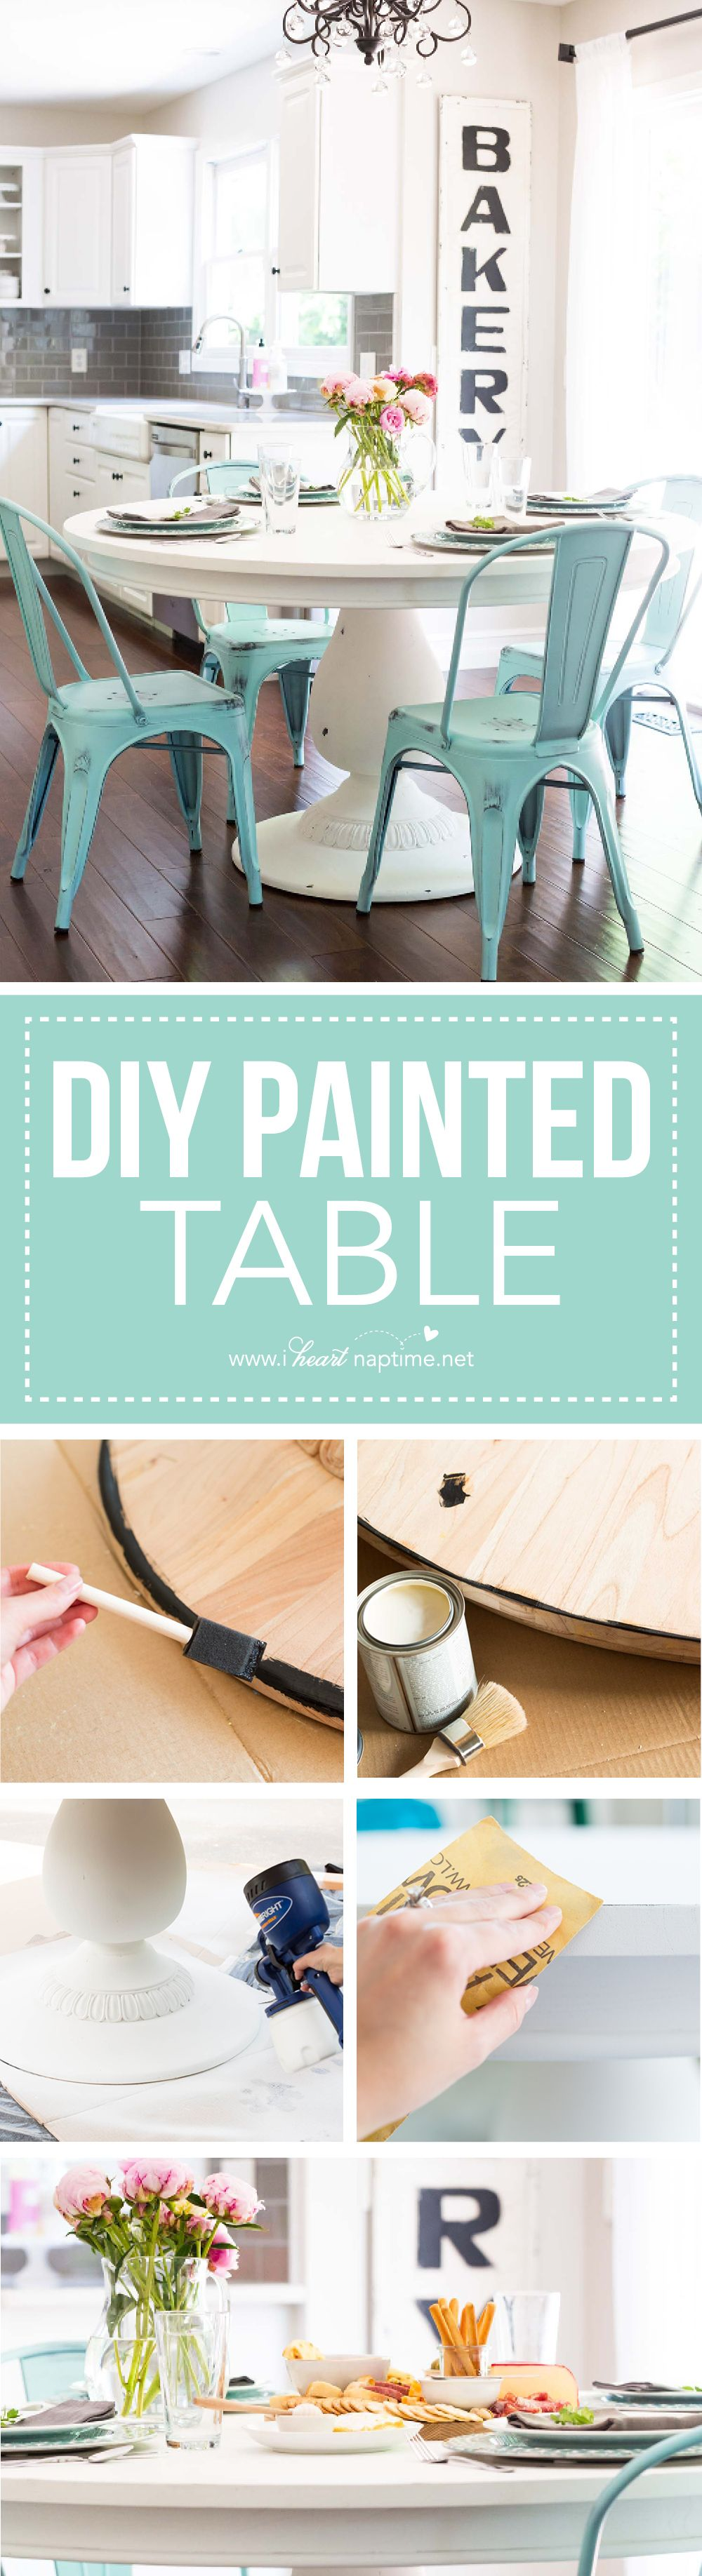 DIY Painted Table & Distressing Technique! @ave_home #avehome ...